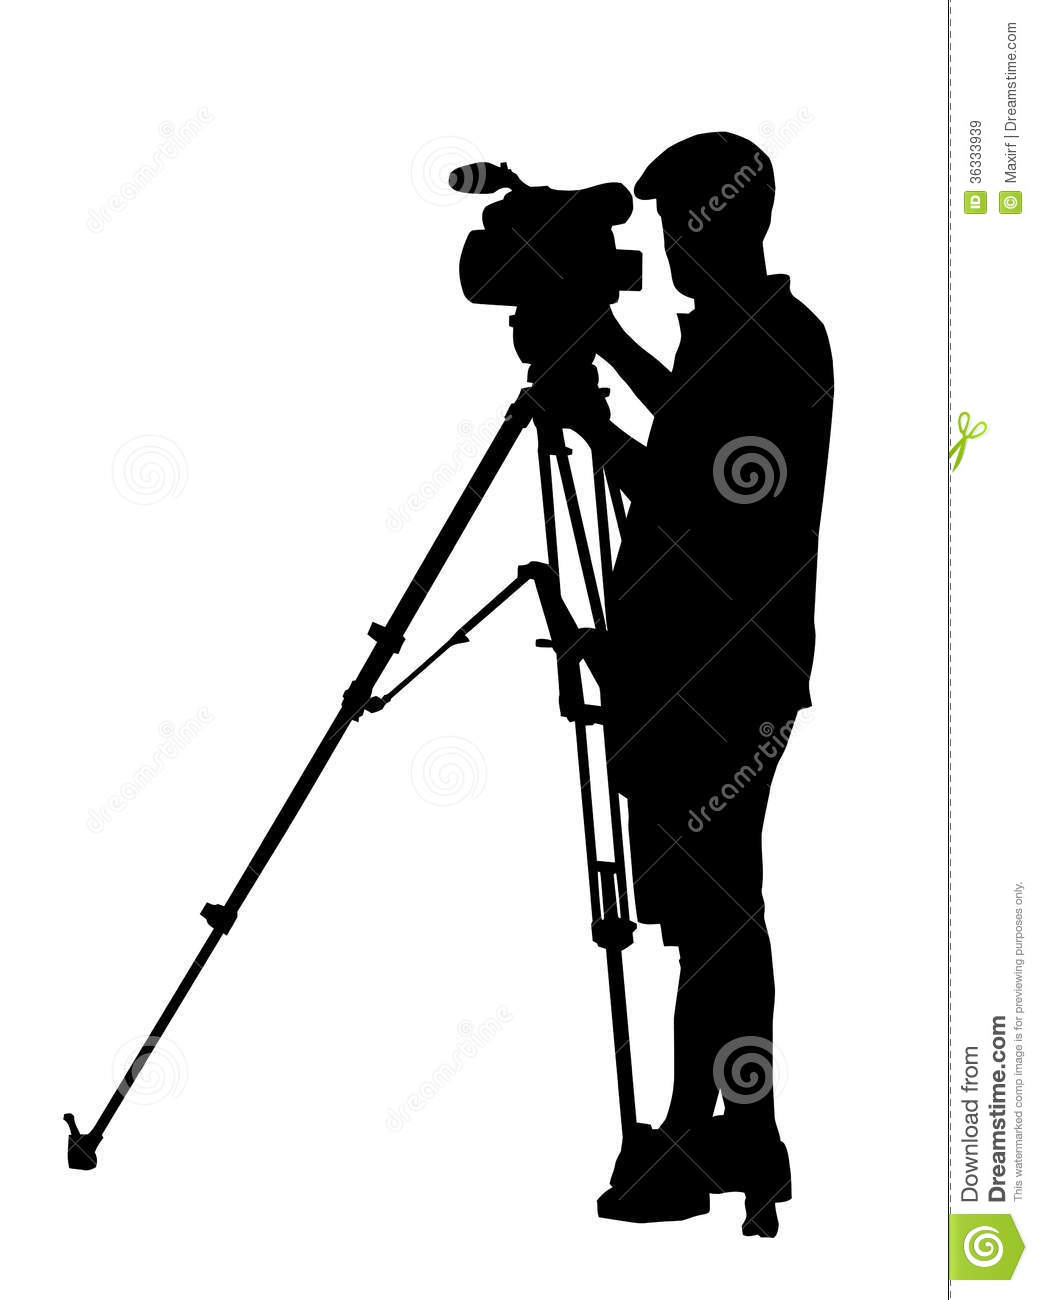 Photography clipart camera man On Clipart Panda Camera Tripod